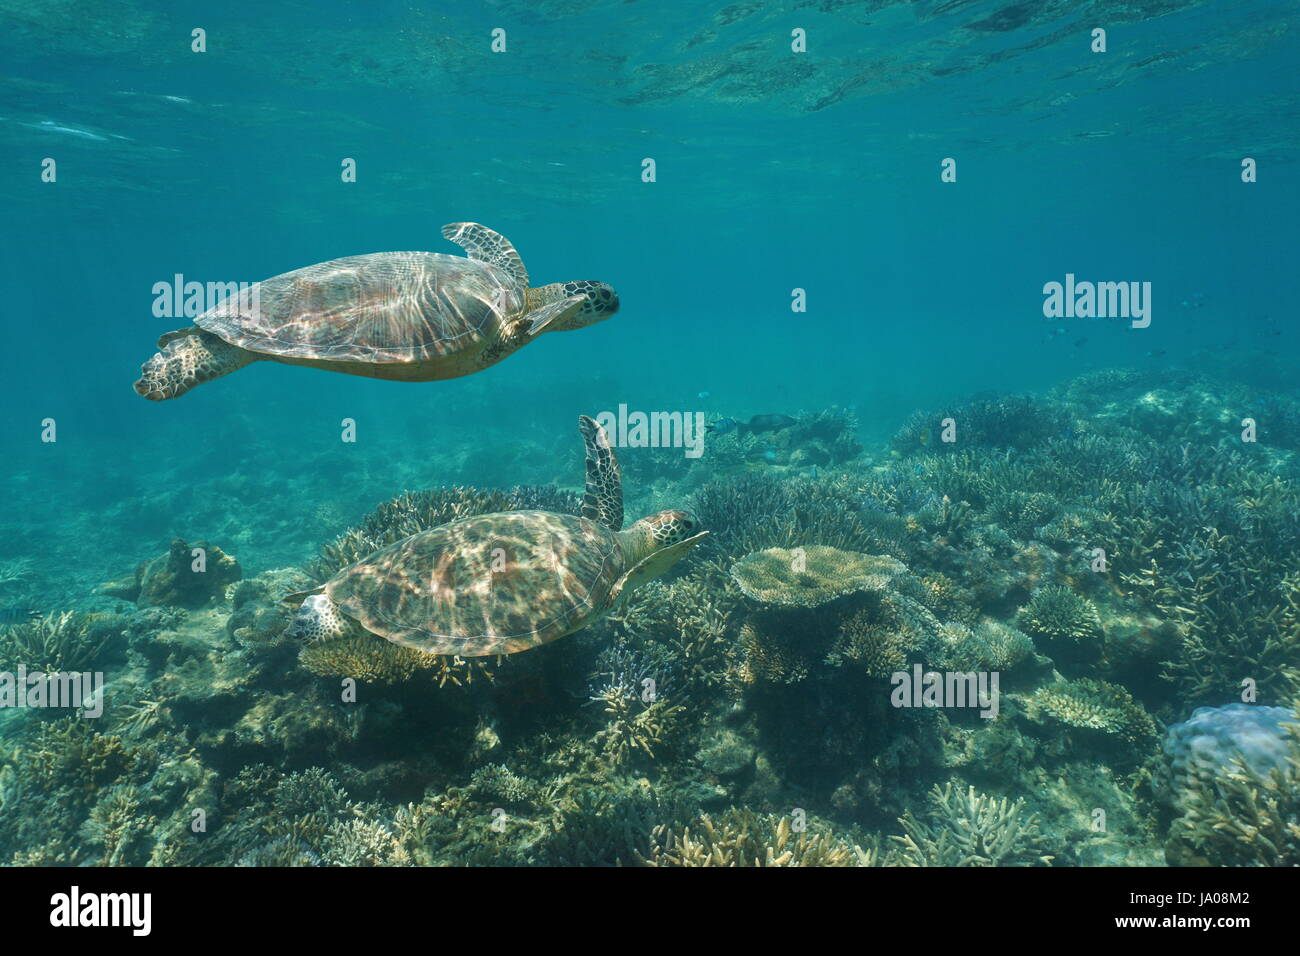 Two green sea turtles Chelonia mydas under the water swims over a coral reef, south Pacific ocean, New Caledonia, - Stock Image